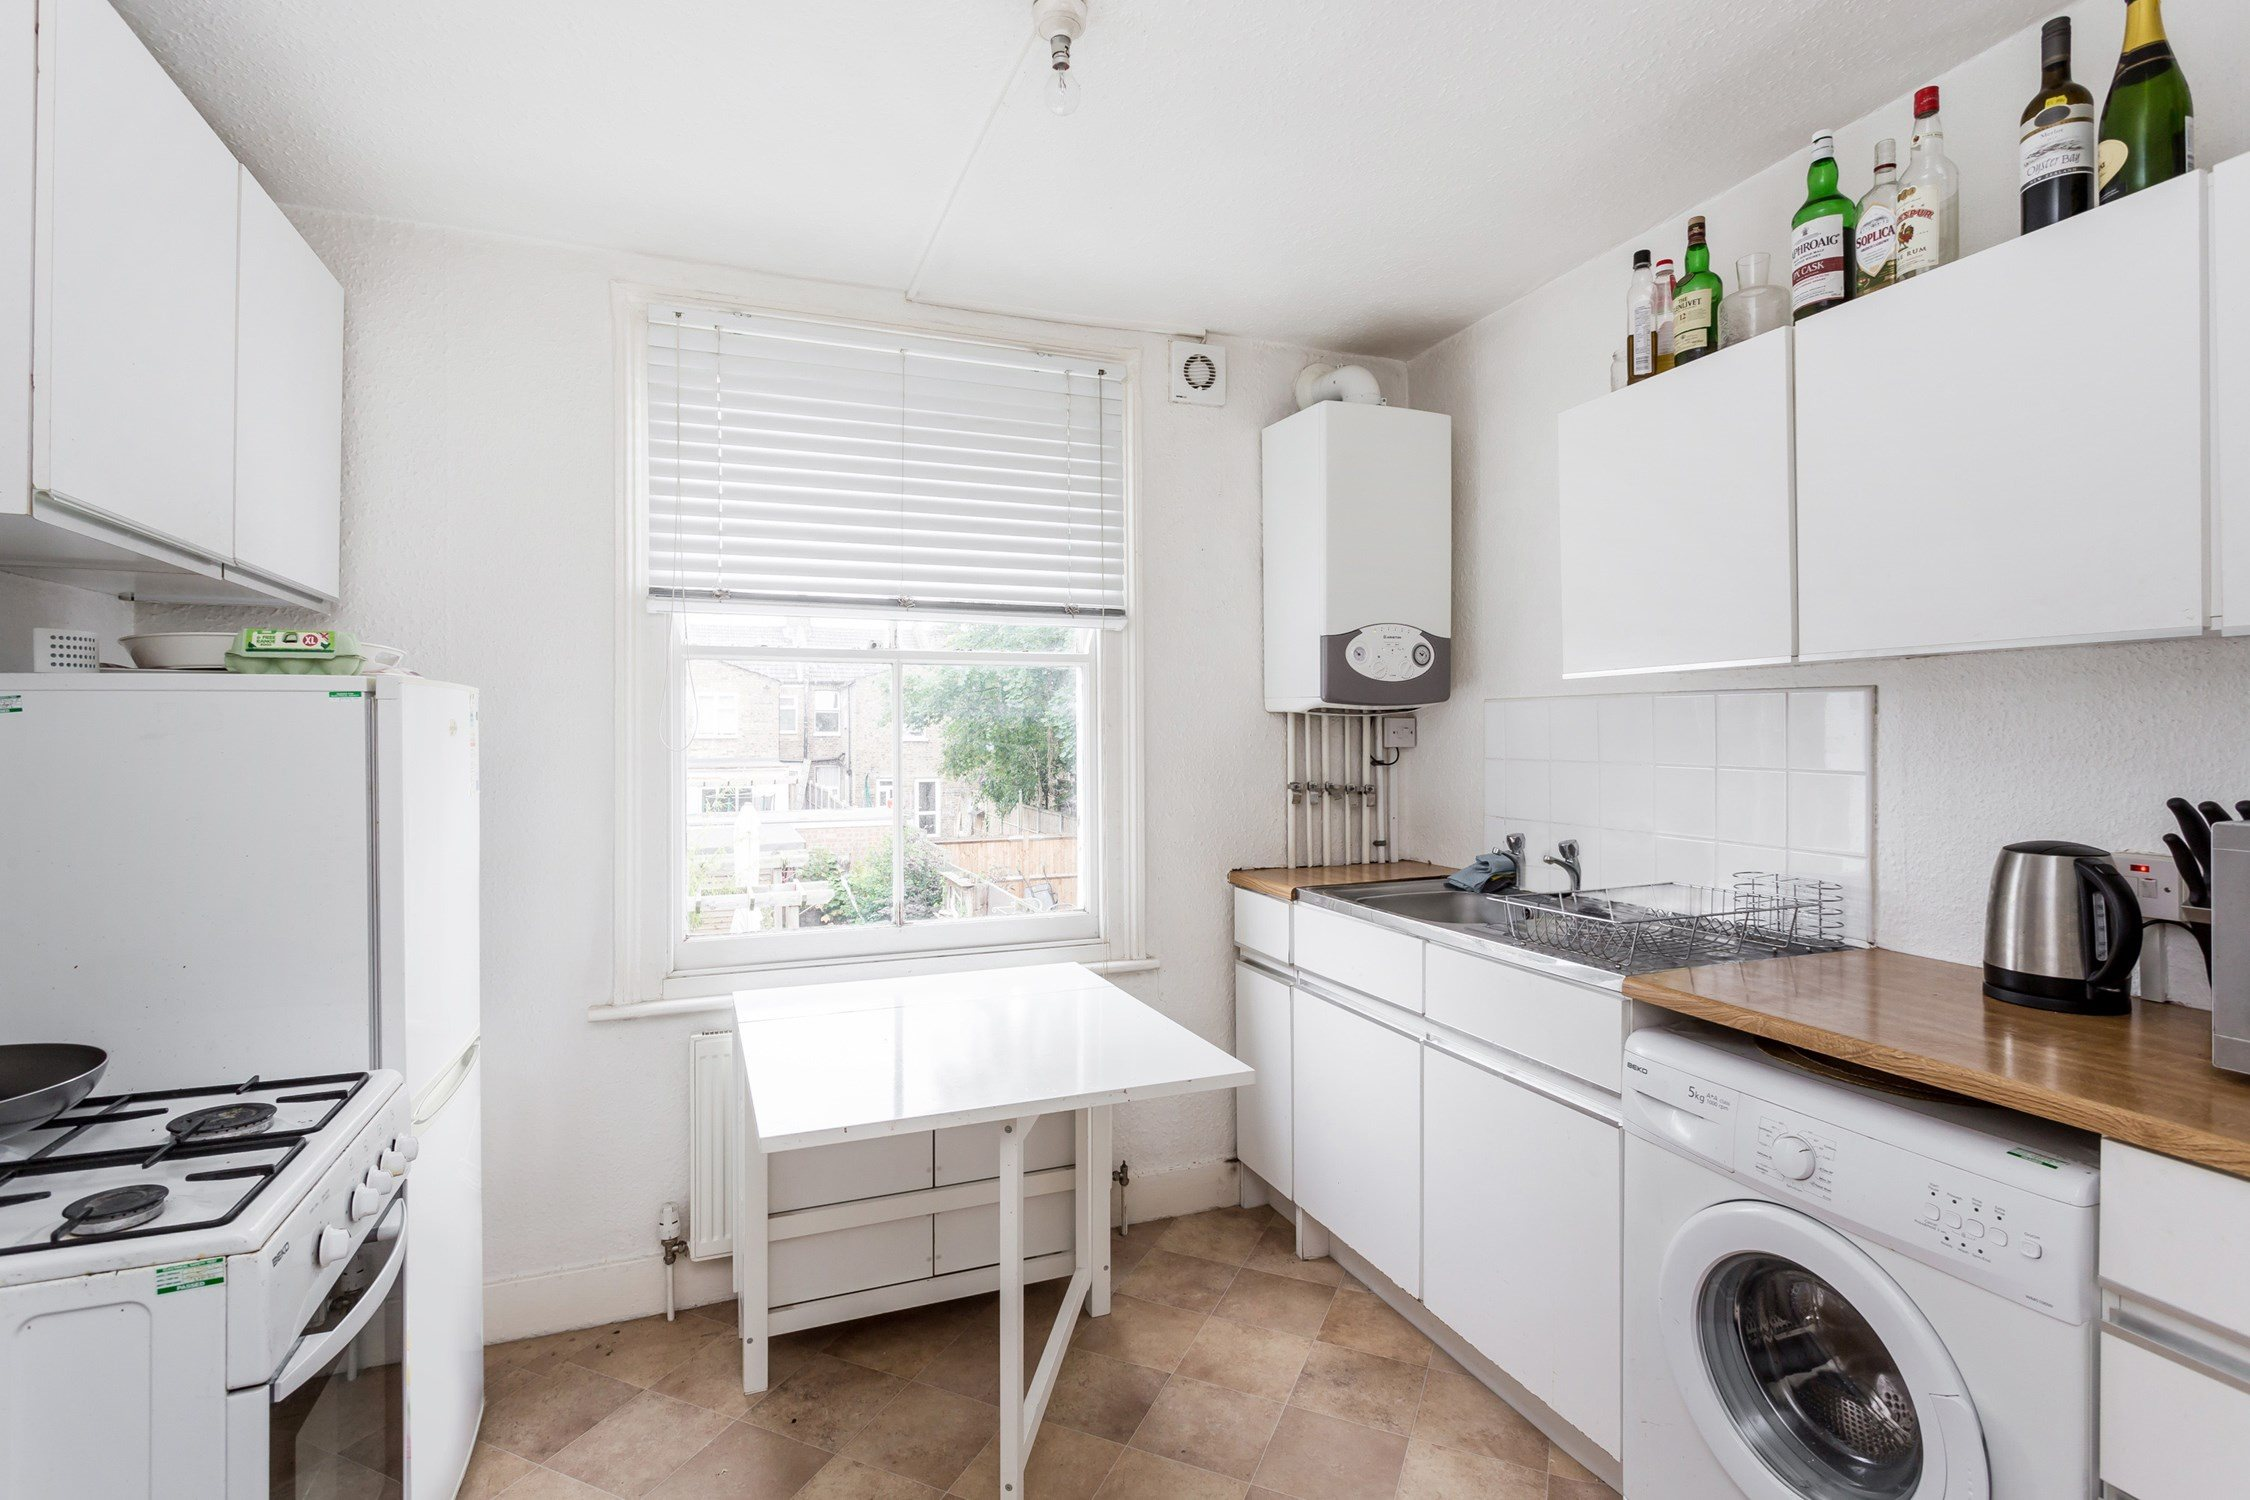 Portico - 1 Bedroom Flat recently let in Walthamstow: Spruce Hills ...